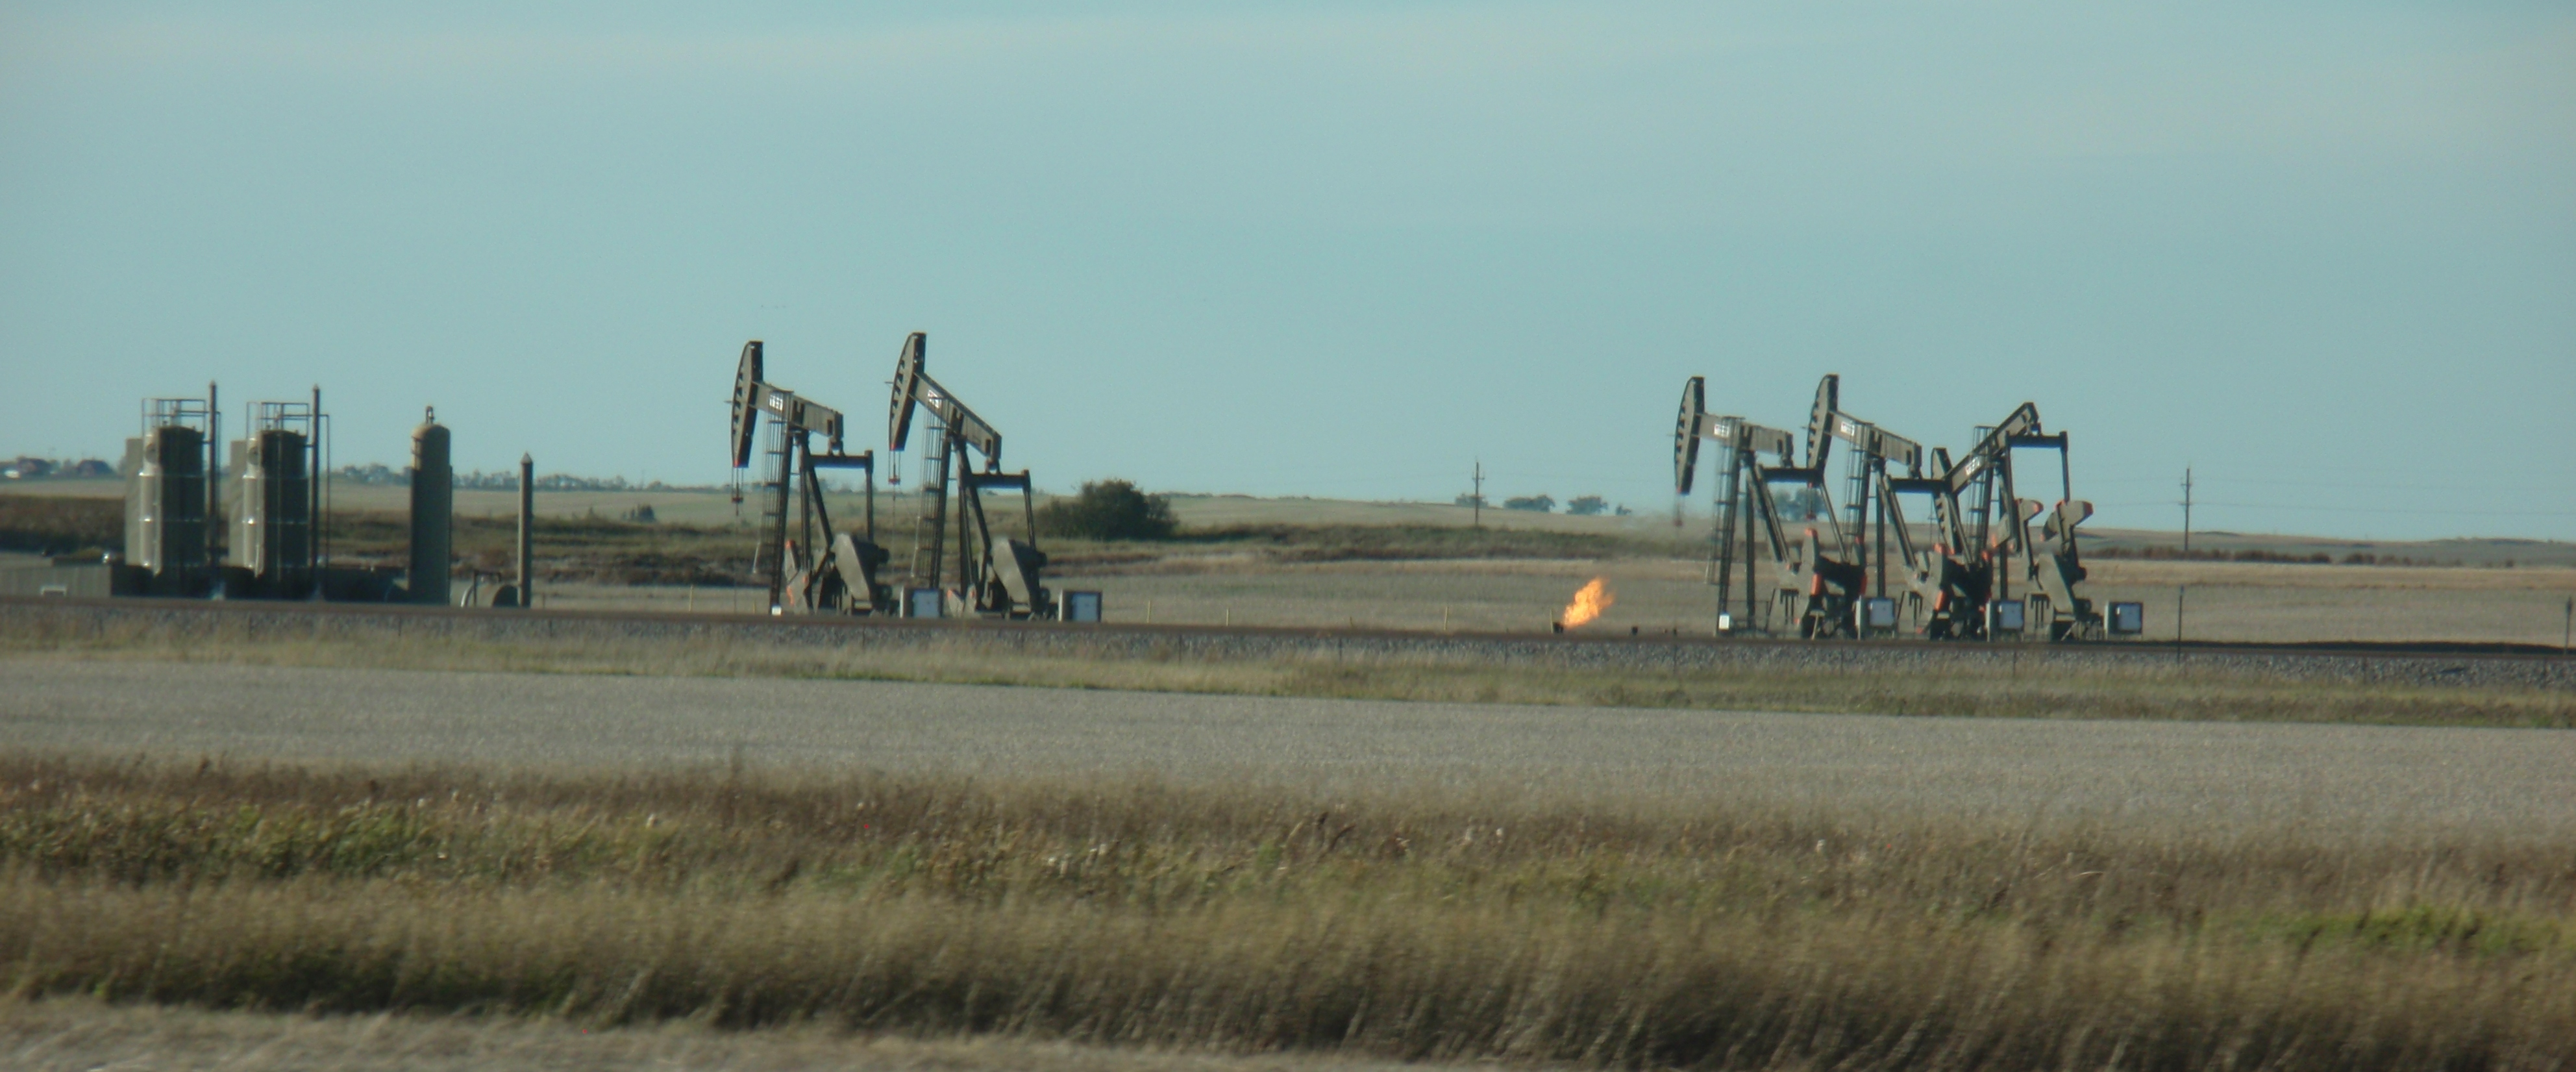 Many more wells will be on that site when all the drilling is done. Slight flaring as photo taken by James Ulvog.